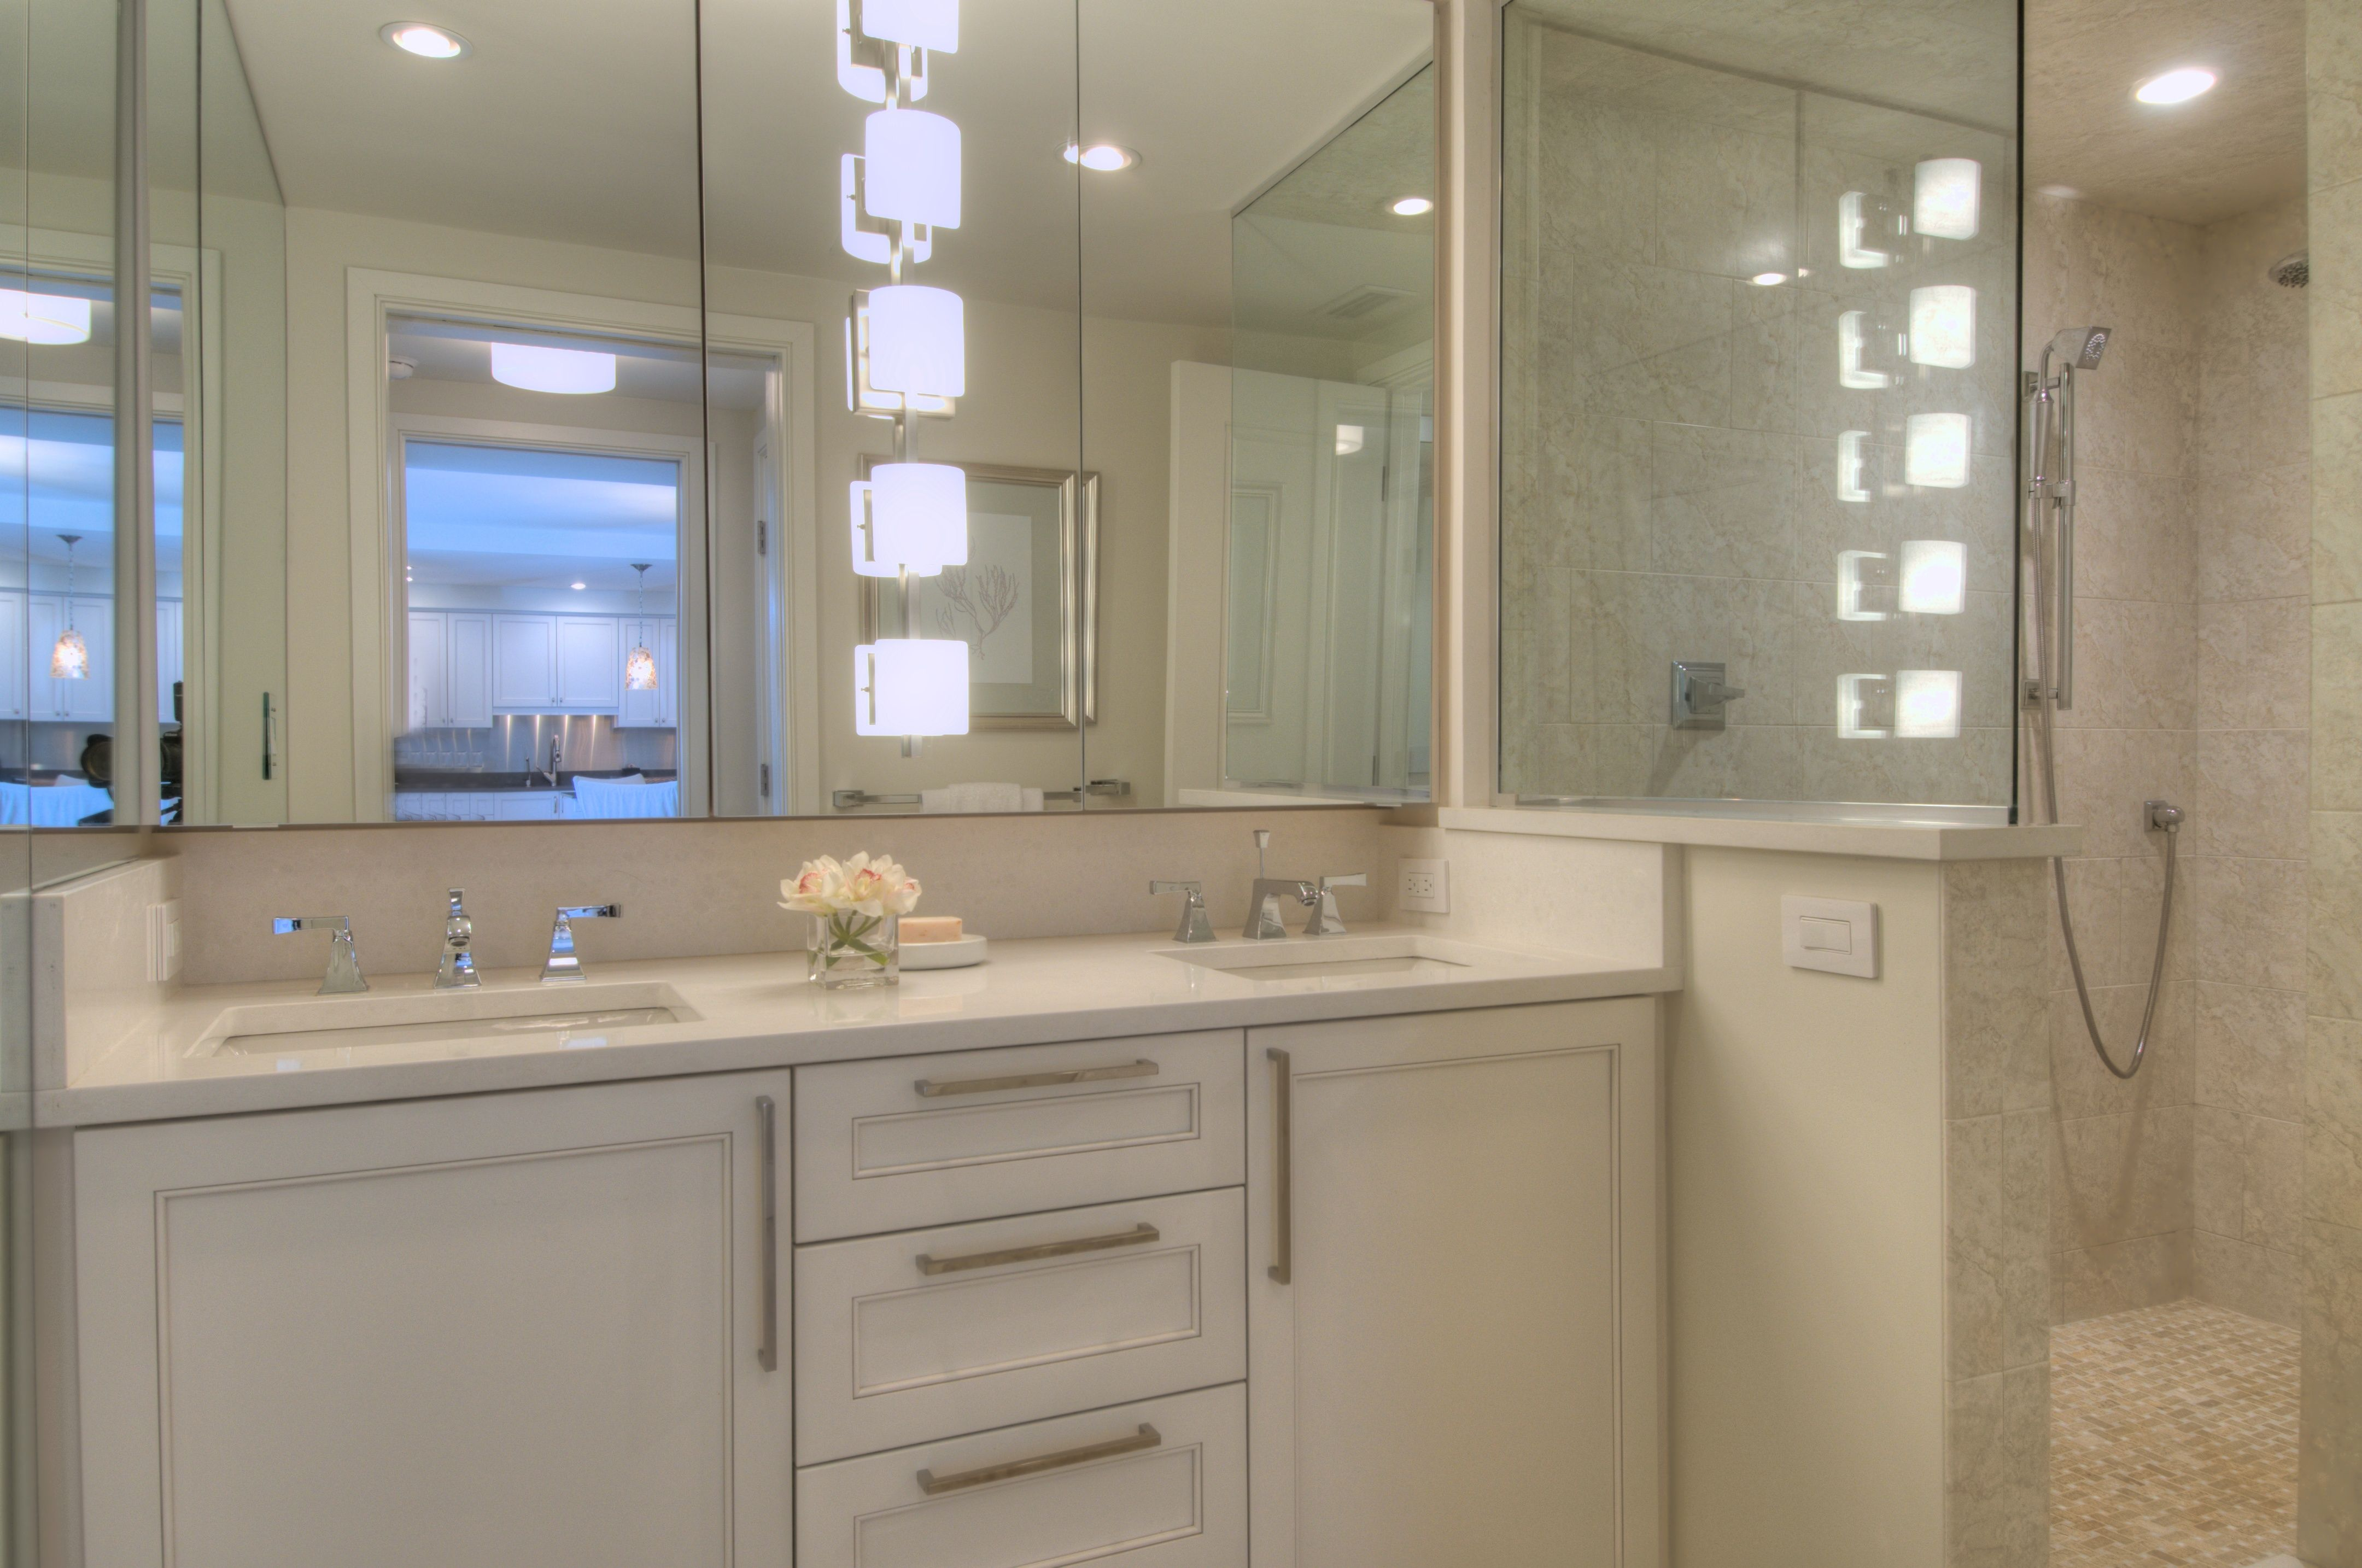 Traditional Cabinetry For This Bath Bathroom Cabinet Design By Metro Company